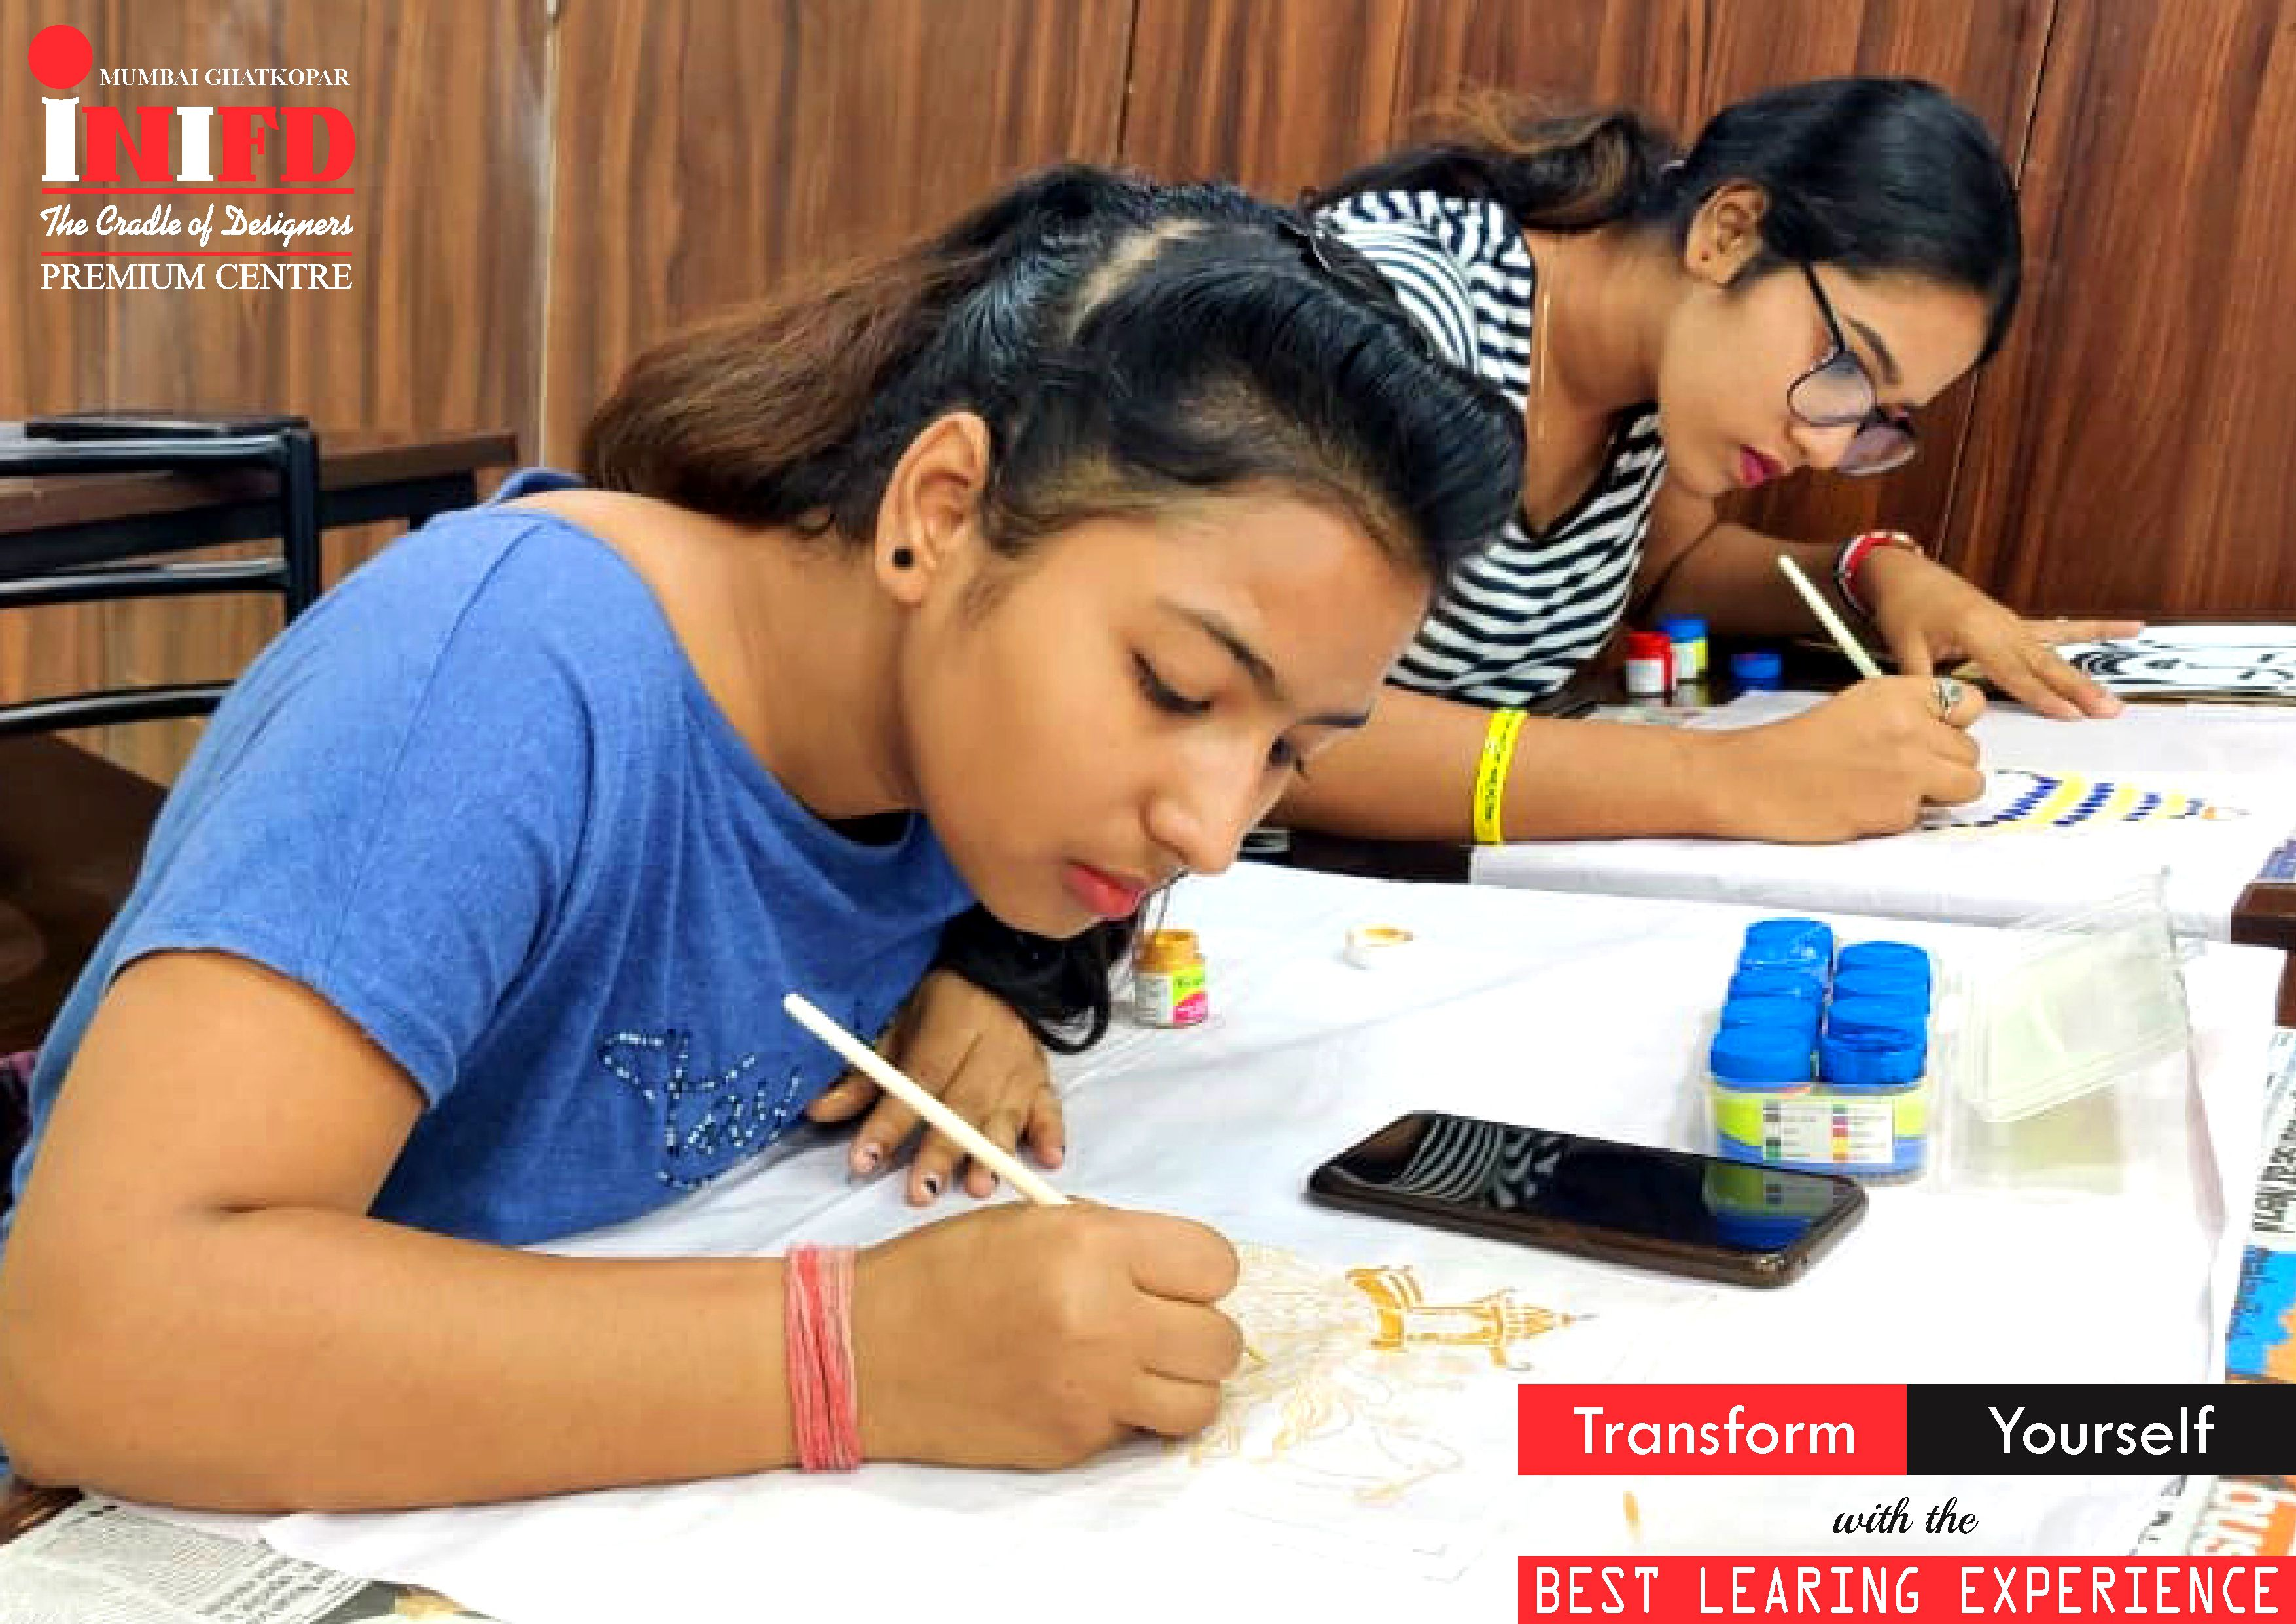 Transform Yourself By Learning Fashion Design Courses From Inifd Mumbai Ghatkopar Admissions Open Dipl In 2020 Interior Design Institute Design Course Fashion Design